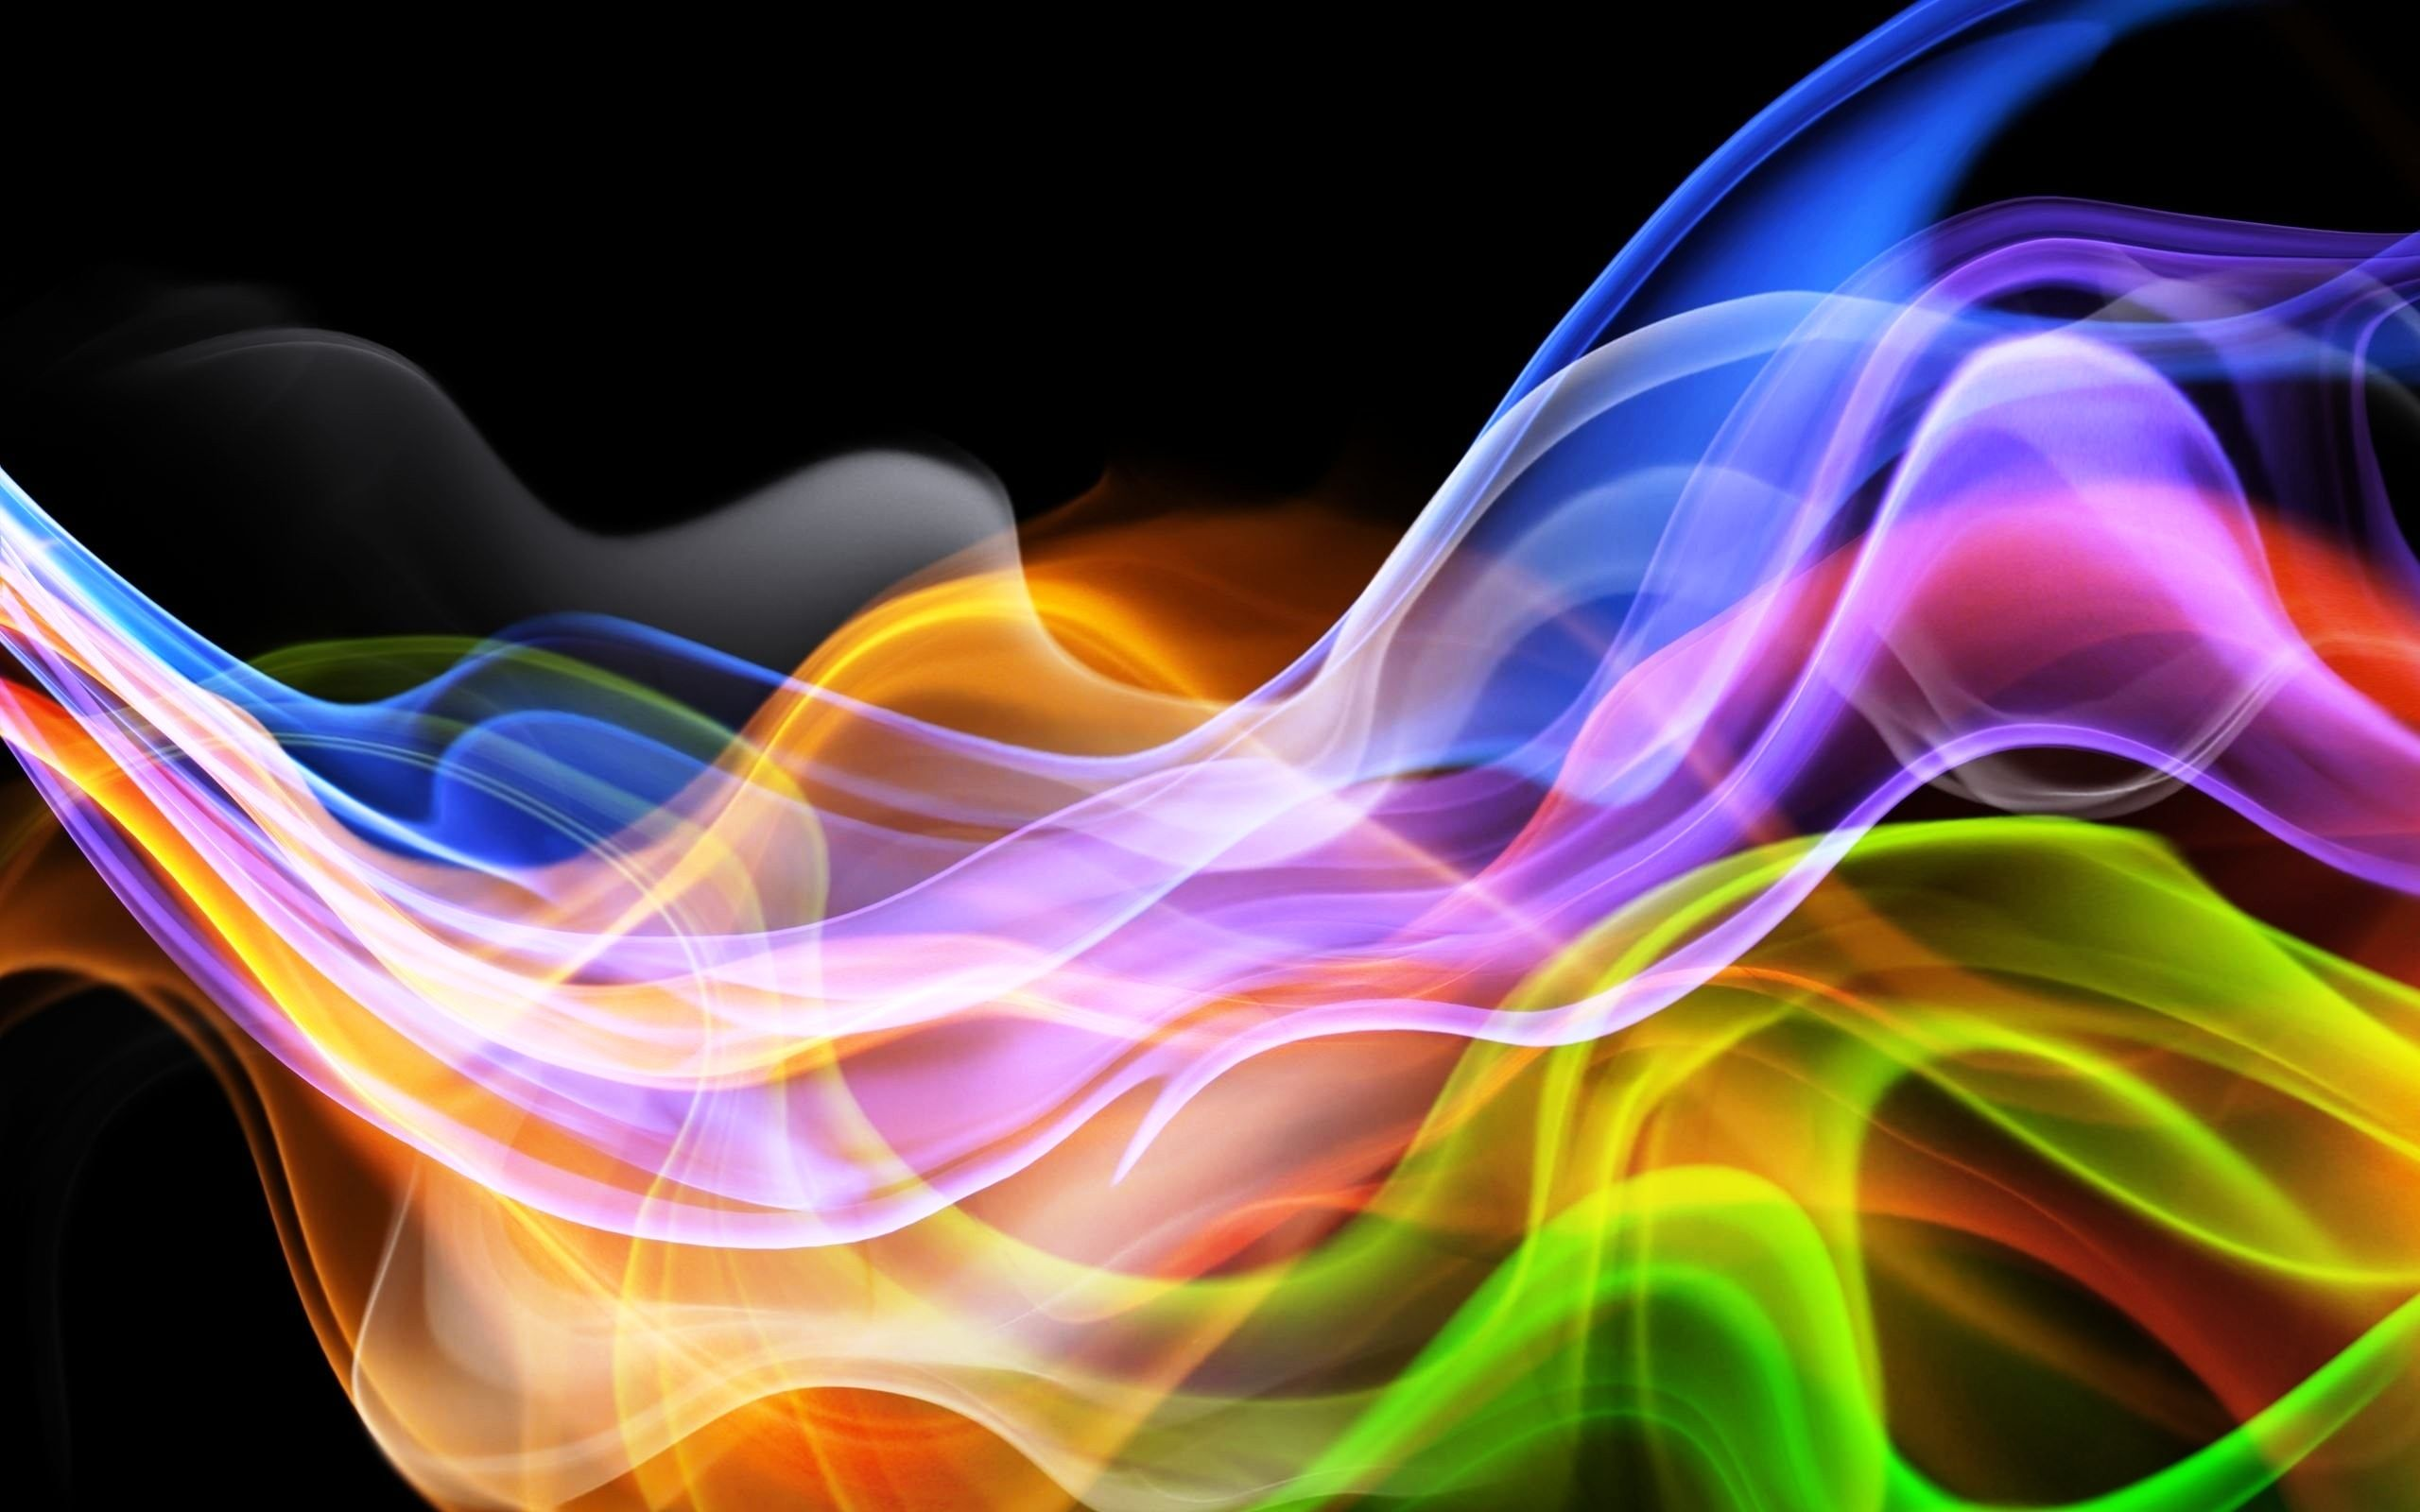 colorful 3d abstract images wallpaper | rainbow | pinterest